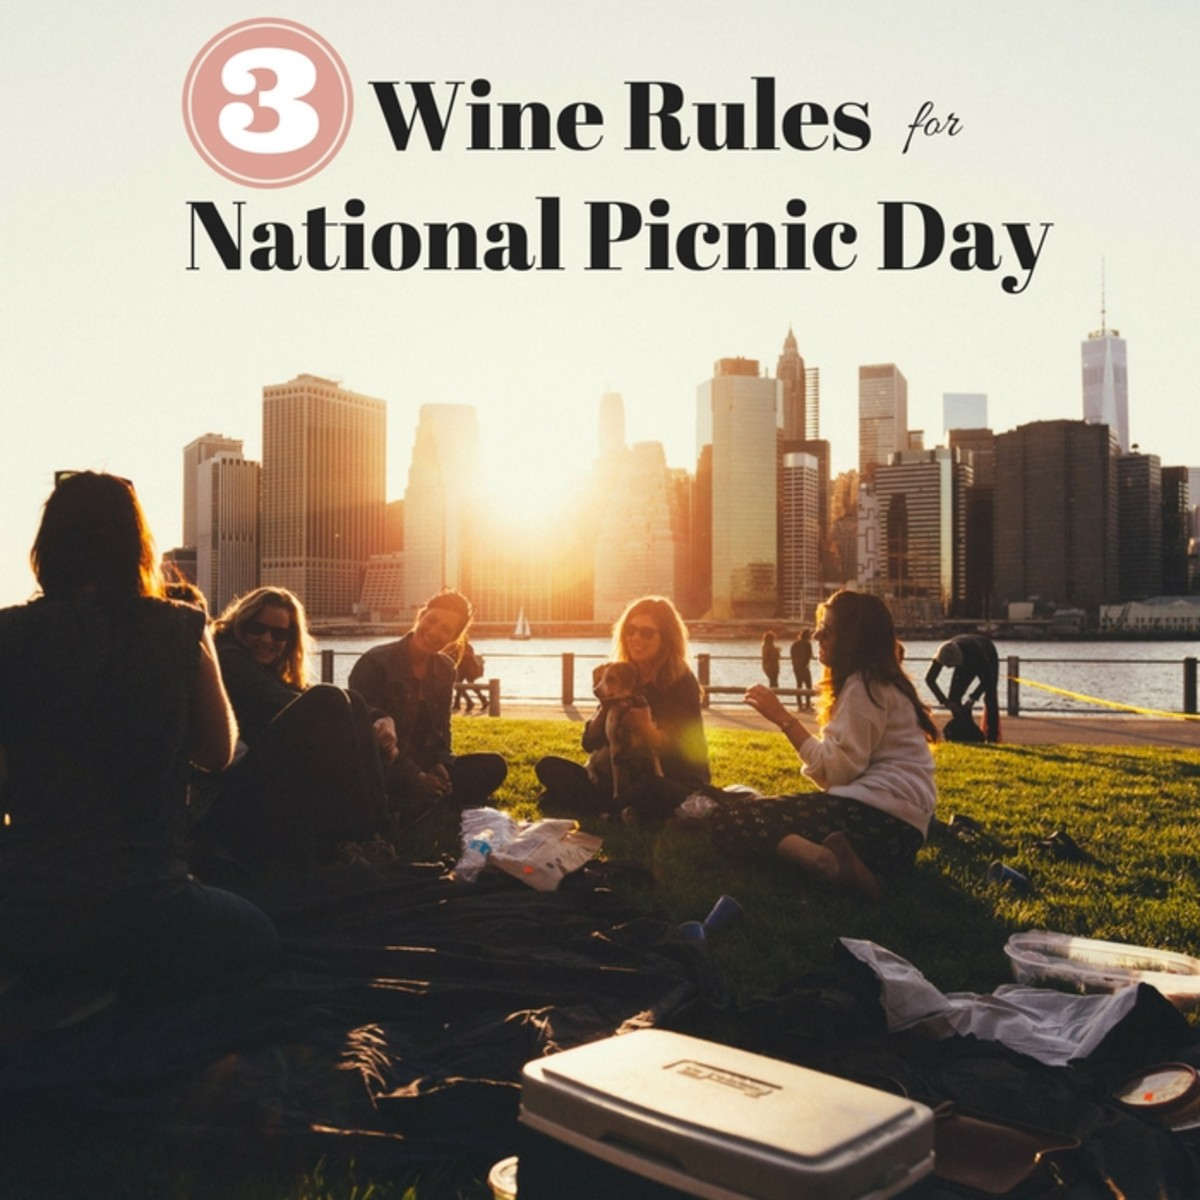 Wine Rules for National Picnic Day